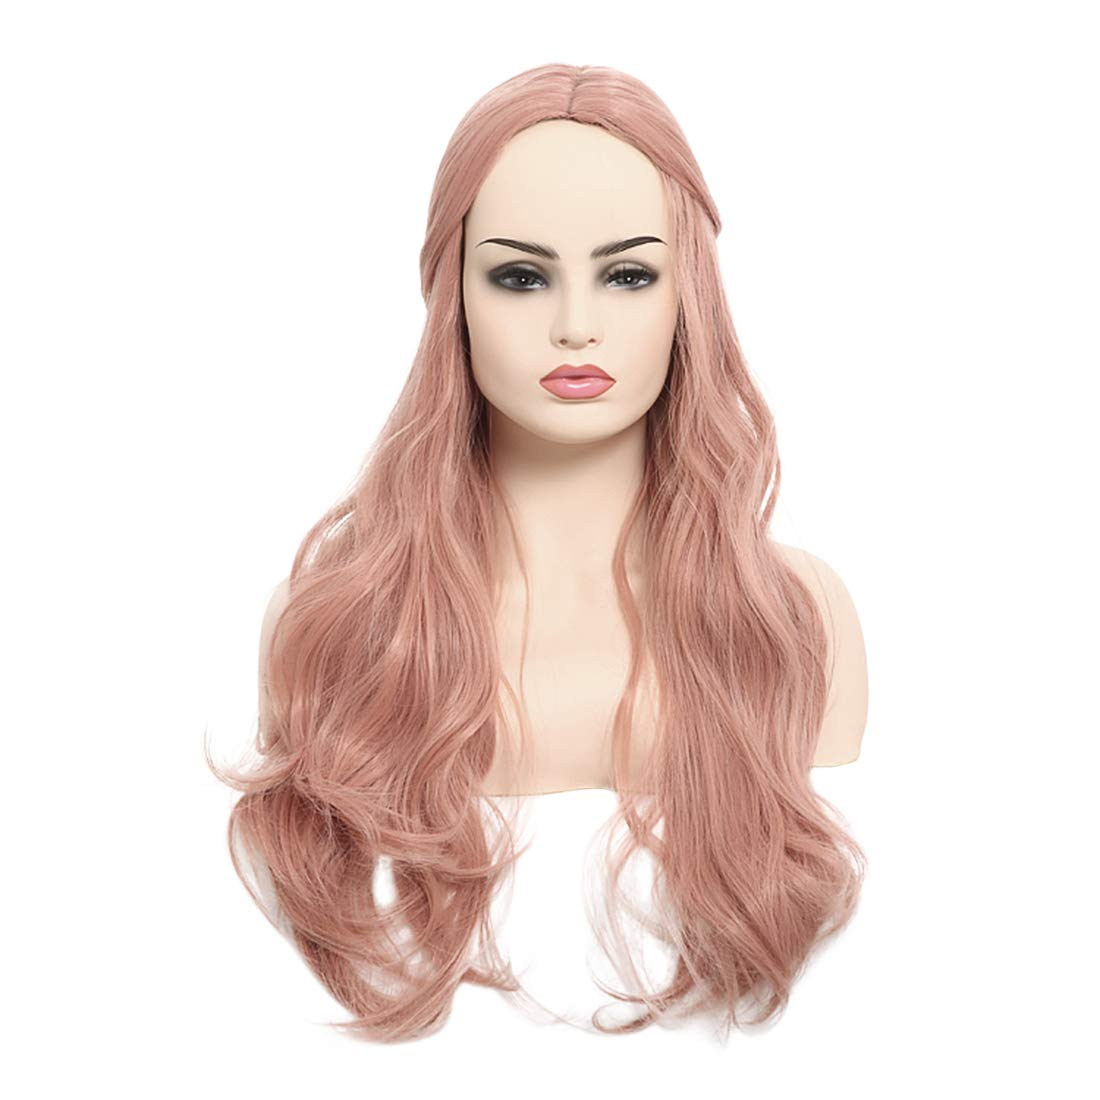 FESHFEN NONE Lace Front Wig Synthetic Long Wavy Natural Hairline Heat Resistant Fiber Hair Replacement Wigs for Women Girls 24 Inch Rose Gold